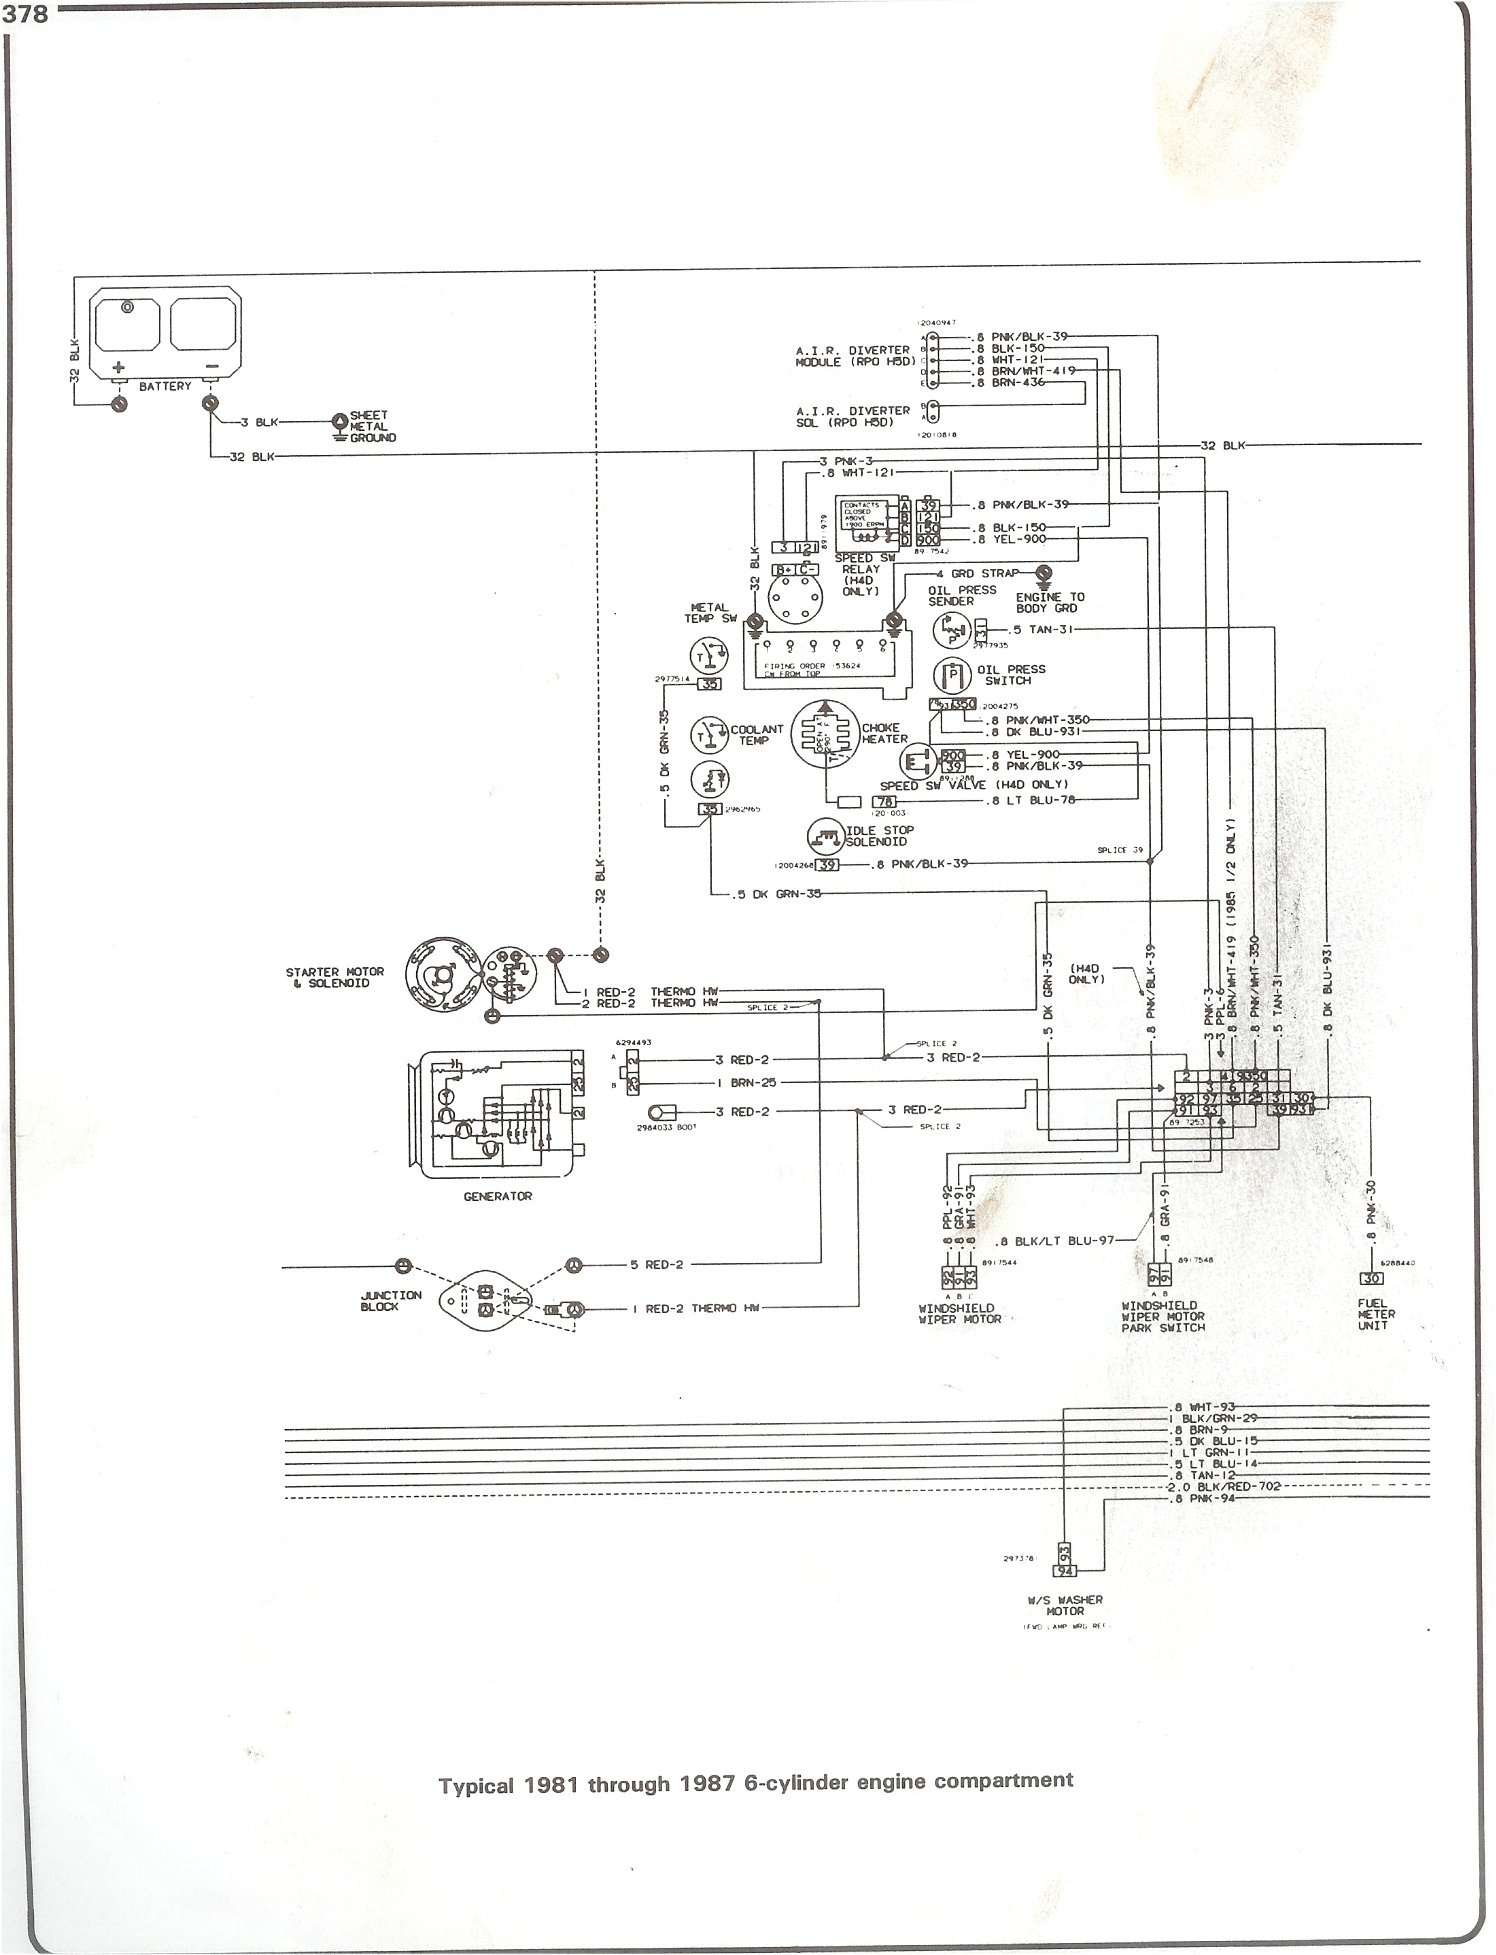 Complete 73 87 Wiring Diagrams 79 C10 Headlight Diagram 81 I6 Engine Compartment